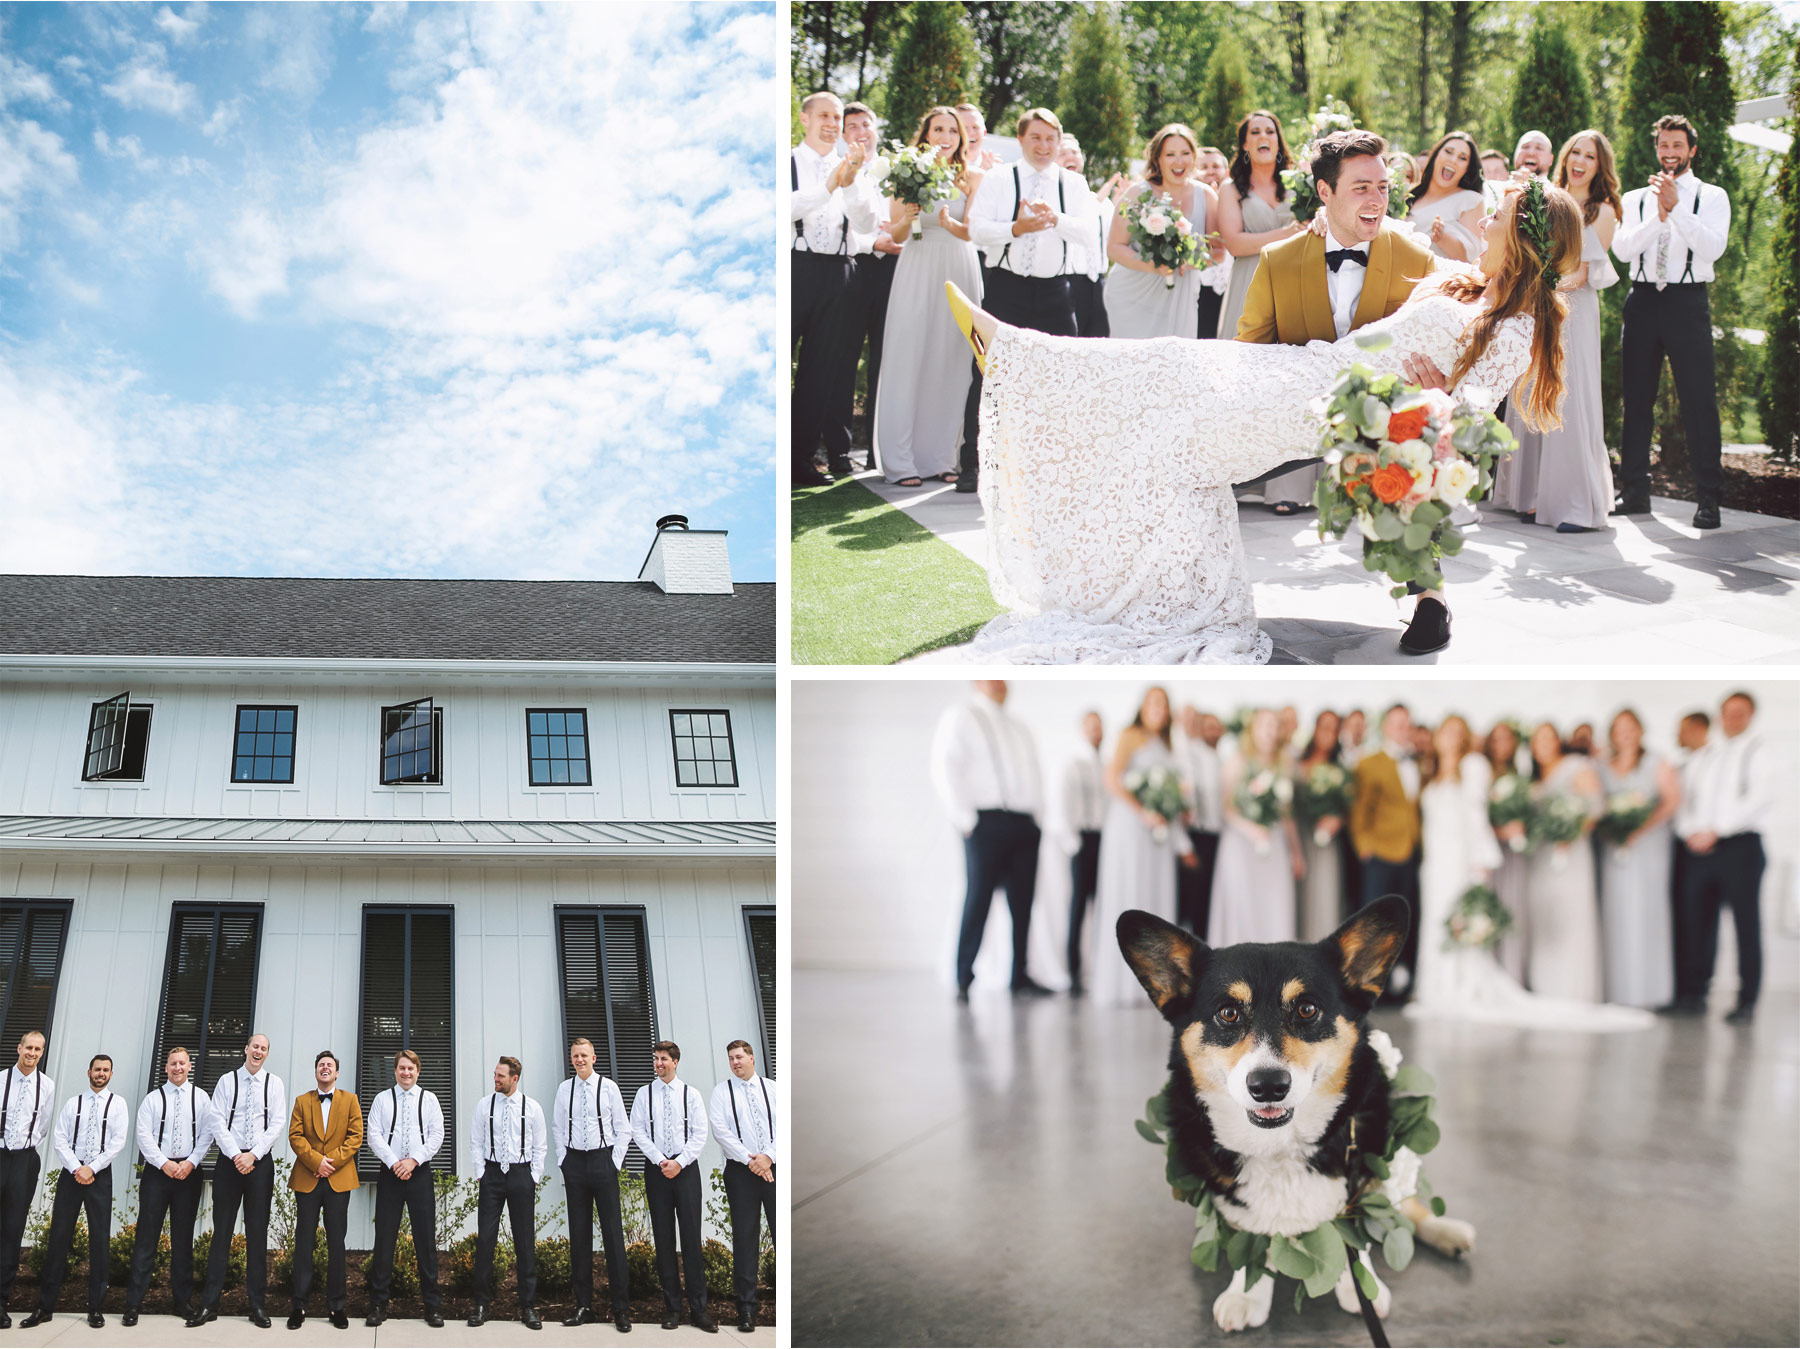 08-Minneapolis-Minnesota-Wedding-Photography-by-Andrew-Vick-Photography-Hutton-House-Outside-Bridesmaids-Groomsmen-Dog-Kelsey-and-Matt.jpg